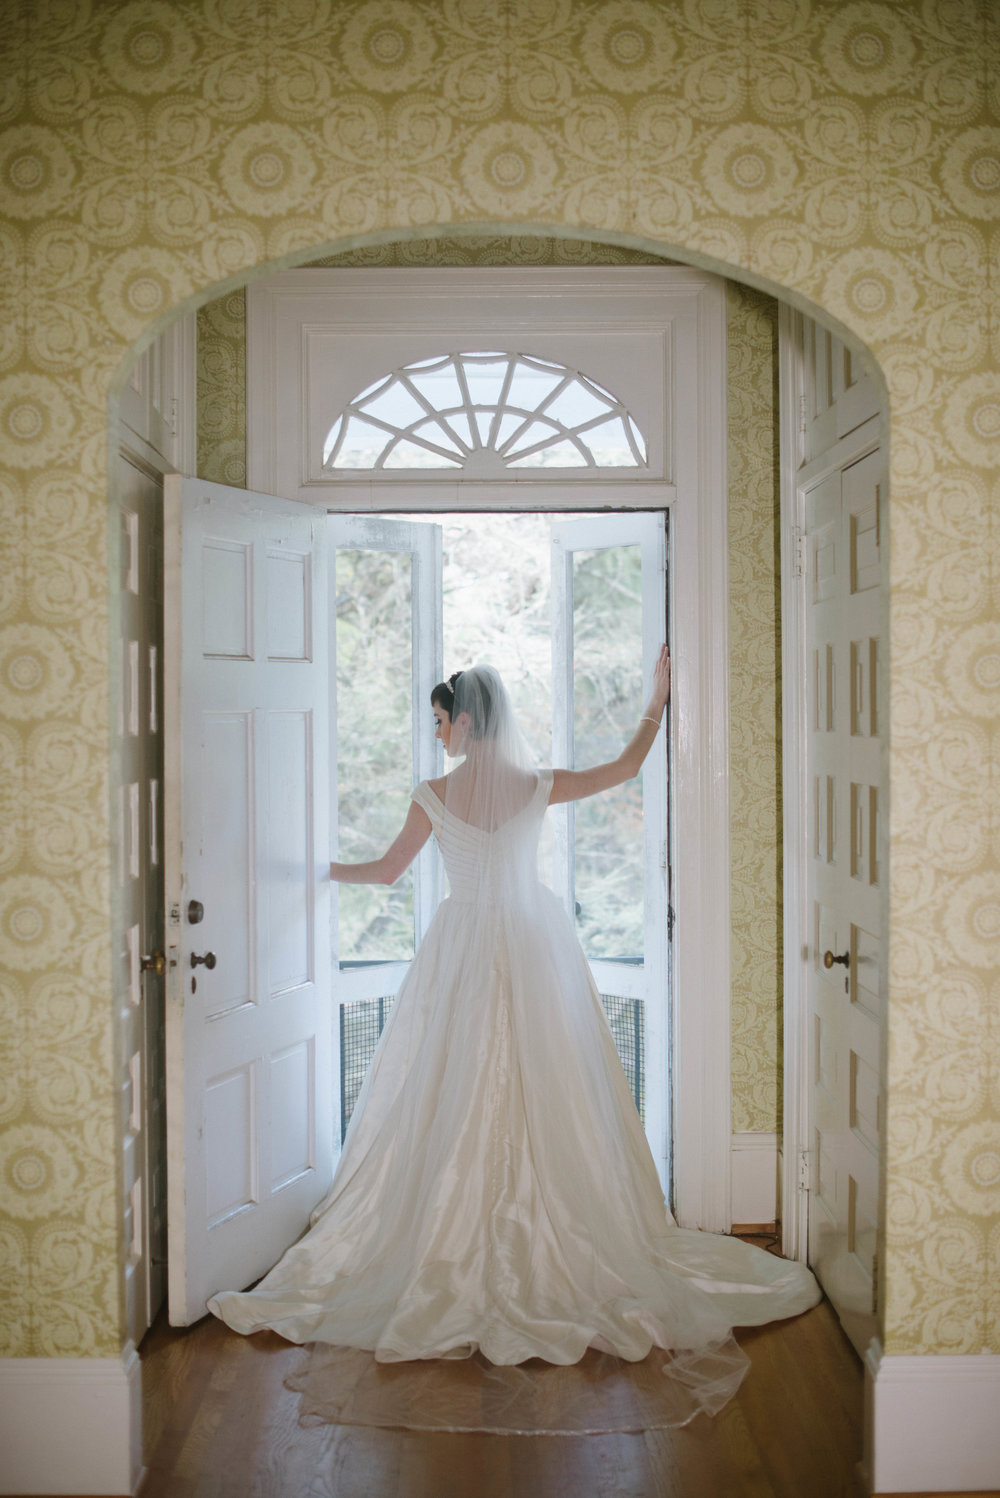 CarolineMerritt|Bridals|_Color_MiraPhotographs-125.jpg